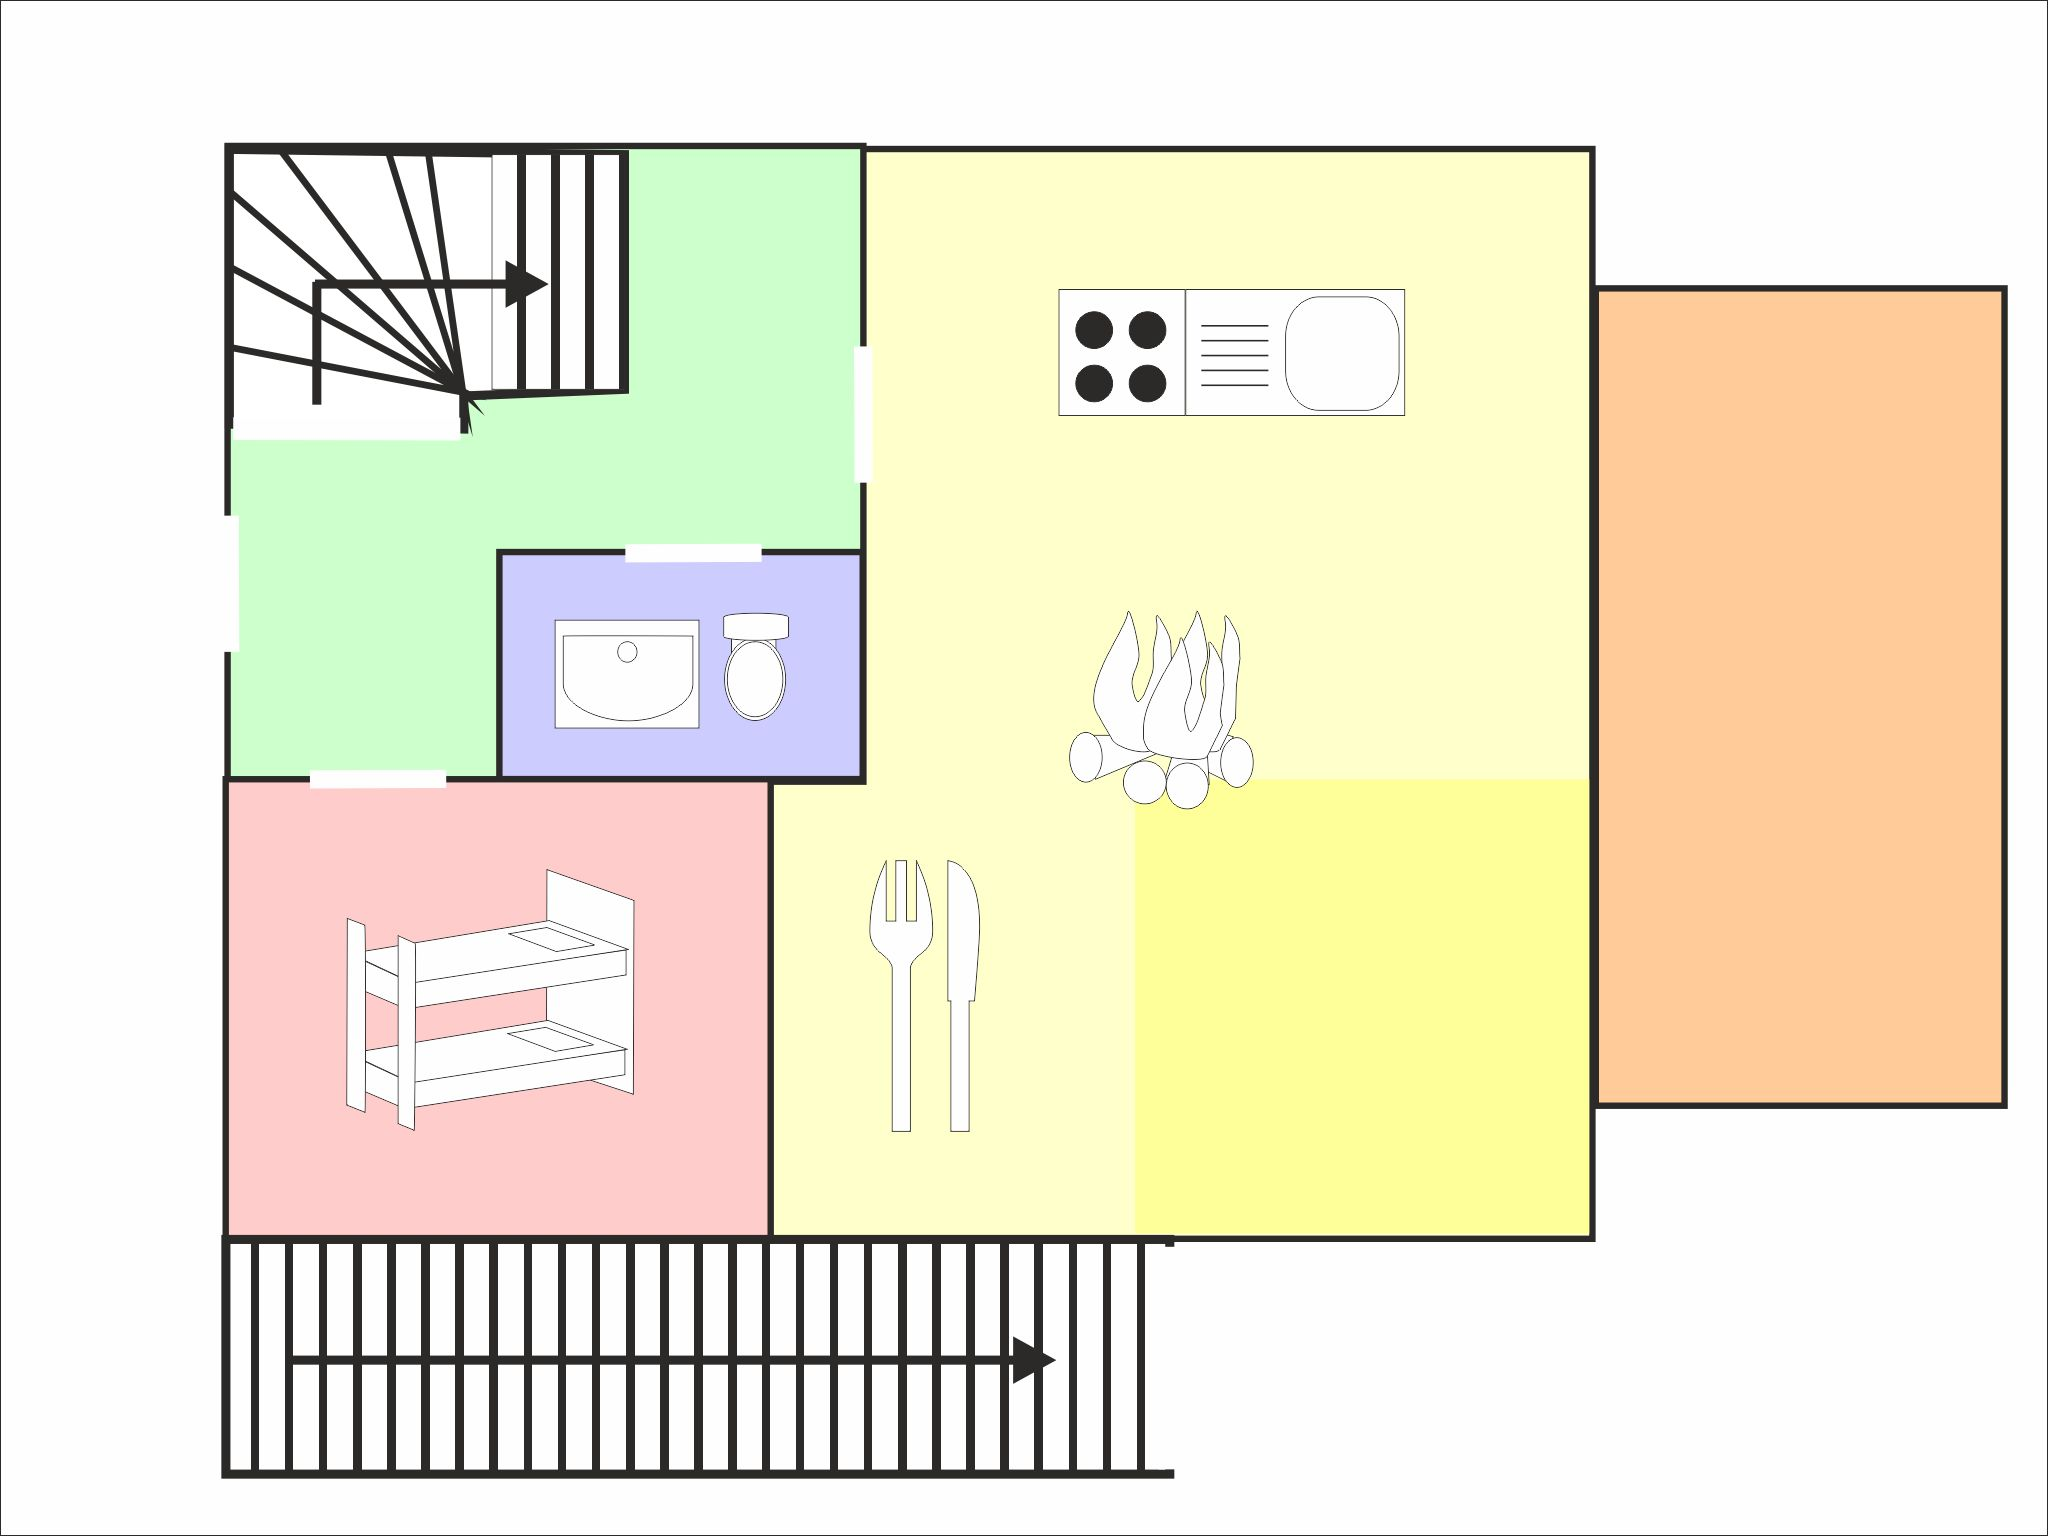 Ski Lodge Leogang - floor plan - level 1